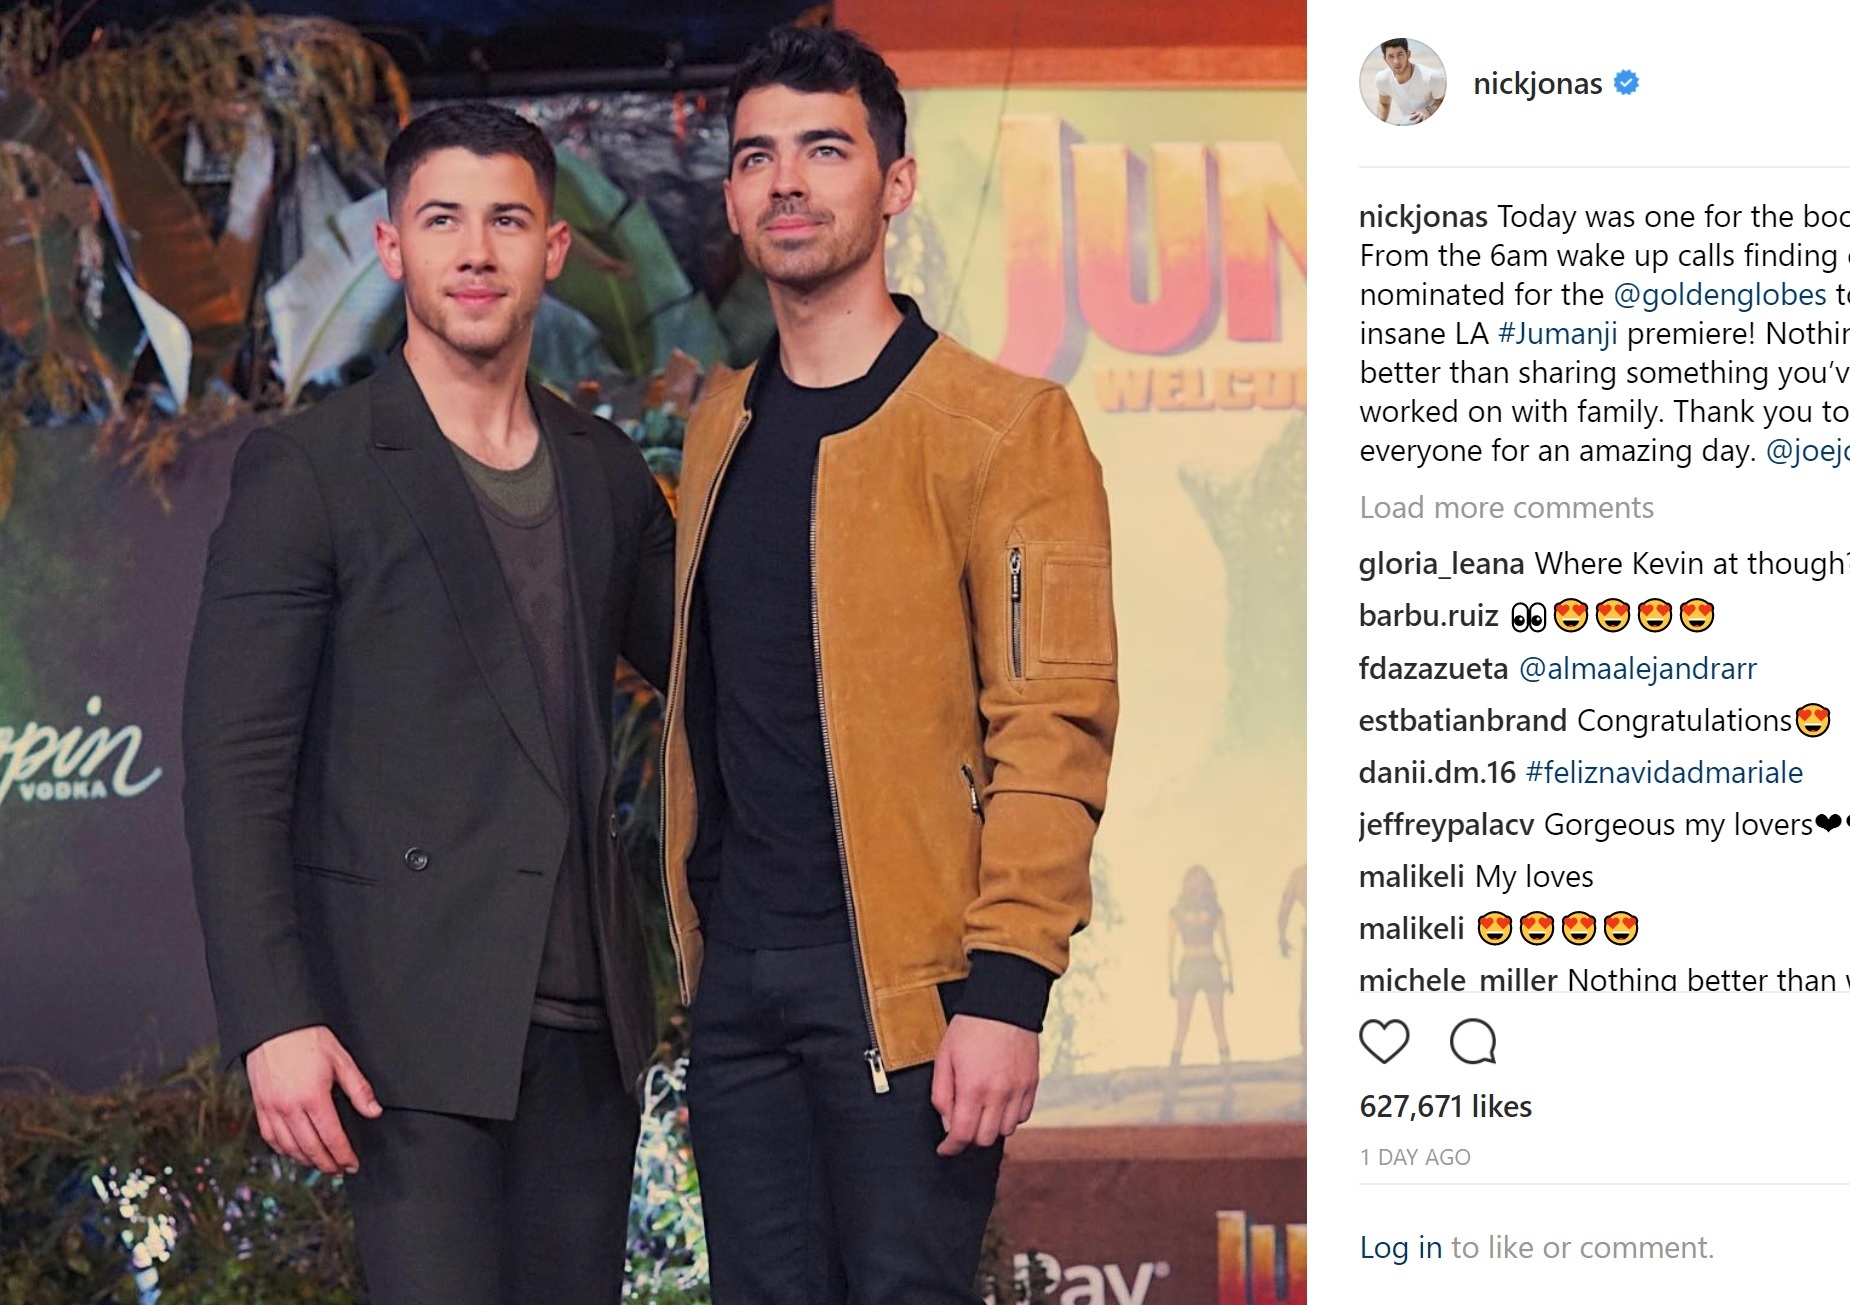 『Jumaniji:Welcome To The Jungle』プレミアにて、兄のジョーとニック(画像は『Nick Jonas 2017年12月12日付Instagram「Today was one for the books... From the 6am wake up calls finding out I'm nominated for the @goldenglobes to the insane LA #Jumanji premiere!」』のスクリーンショット)